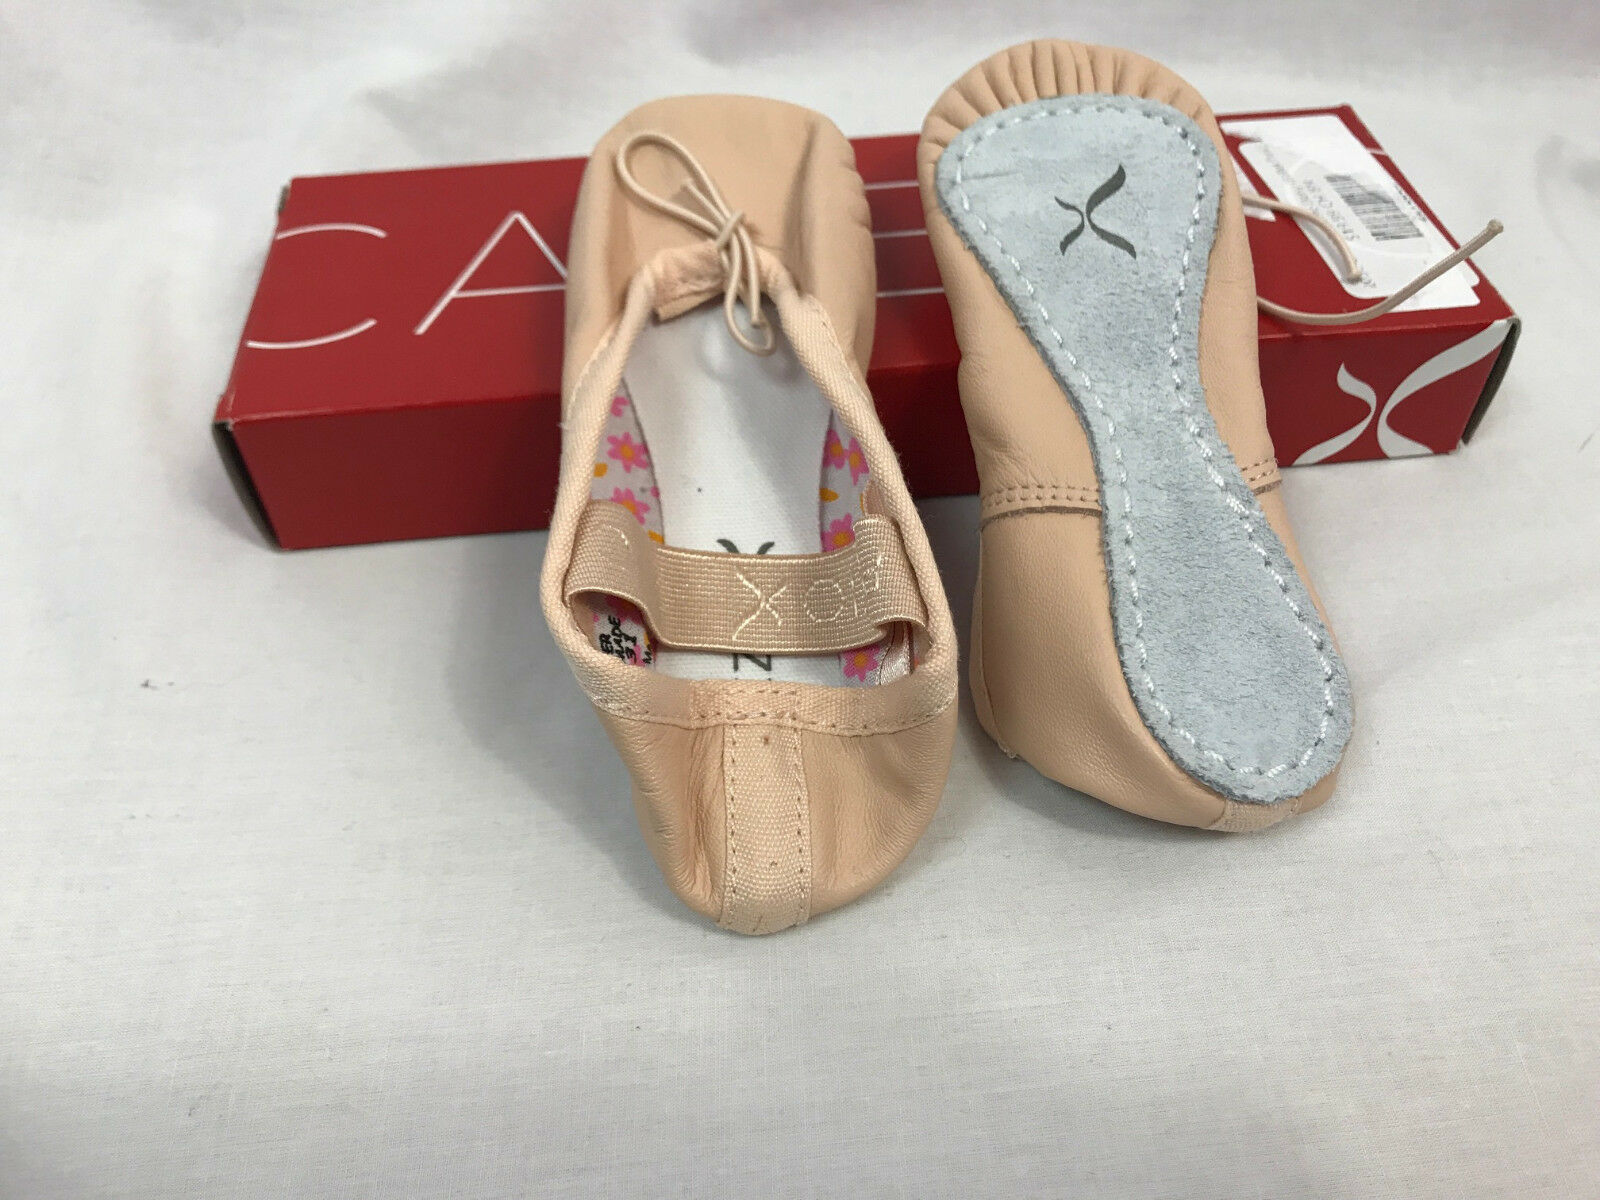 Capezio Girls Daisy Full Sole 205X Ballet Pink Shoes Toddler 6 N, New in Box